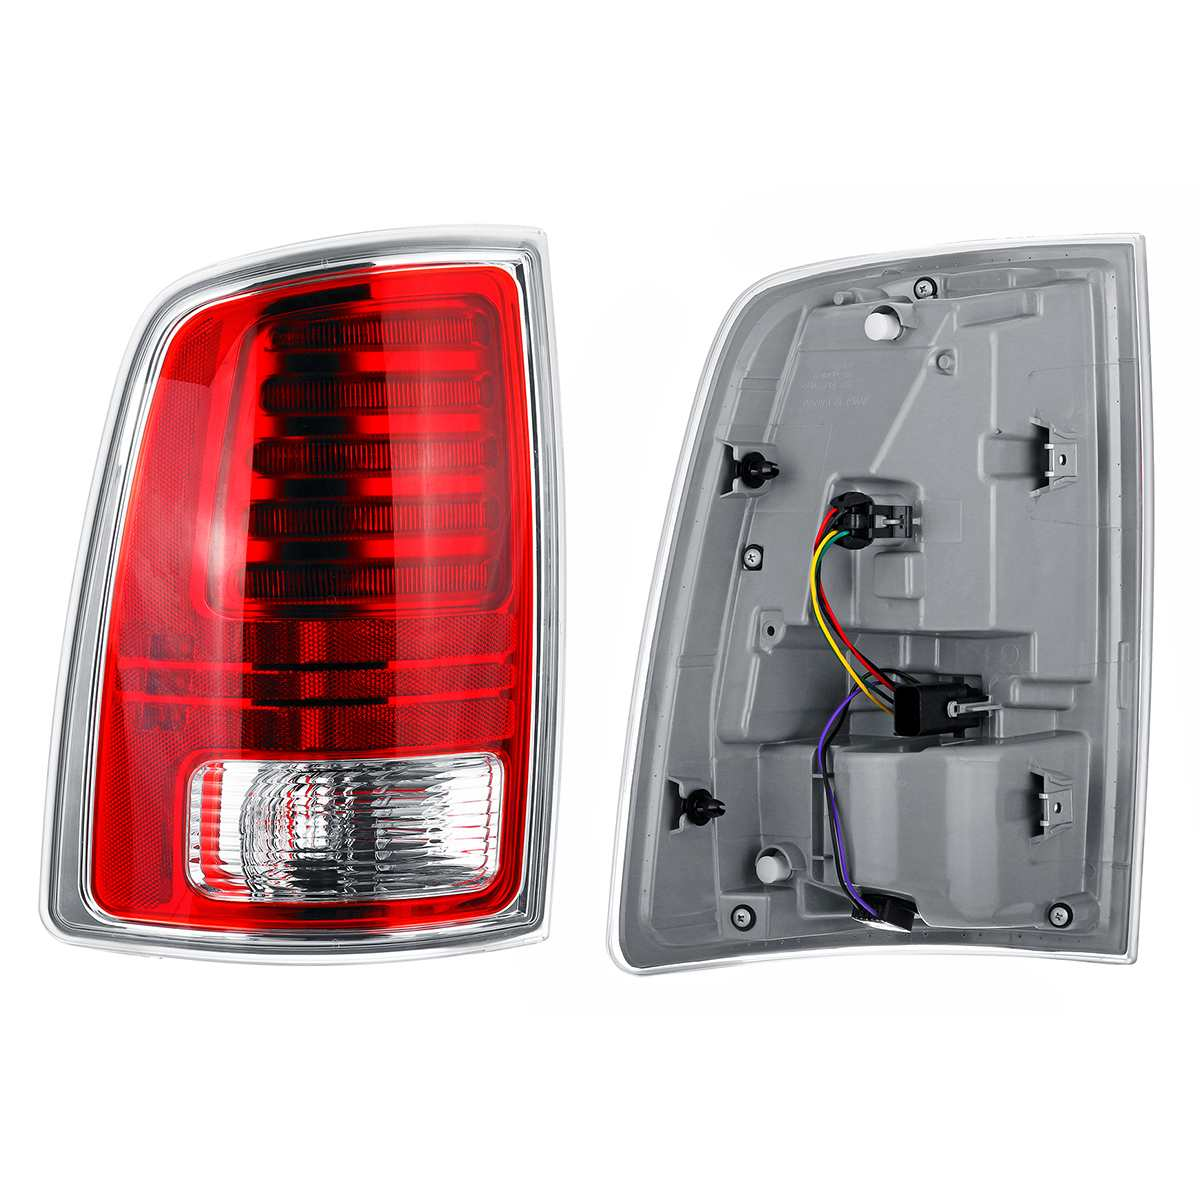 AUDEW 1Pc Left/ Right Car LED Tail Light Rear Lamp 12V For Ram 1500 Classic 2014 2018 Tail Light Warning Lights Rear Lamps Taill